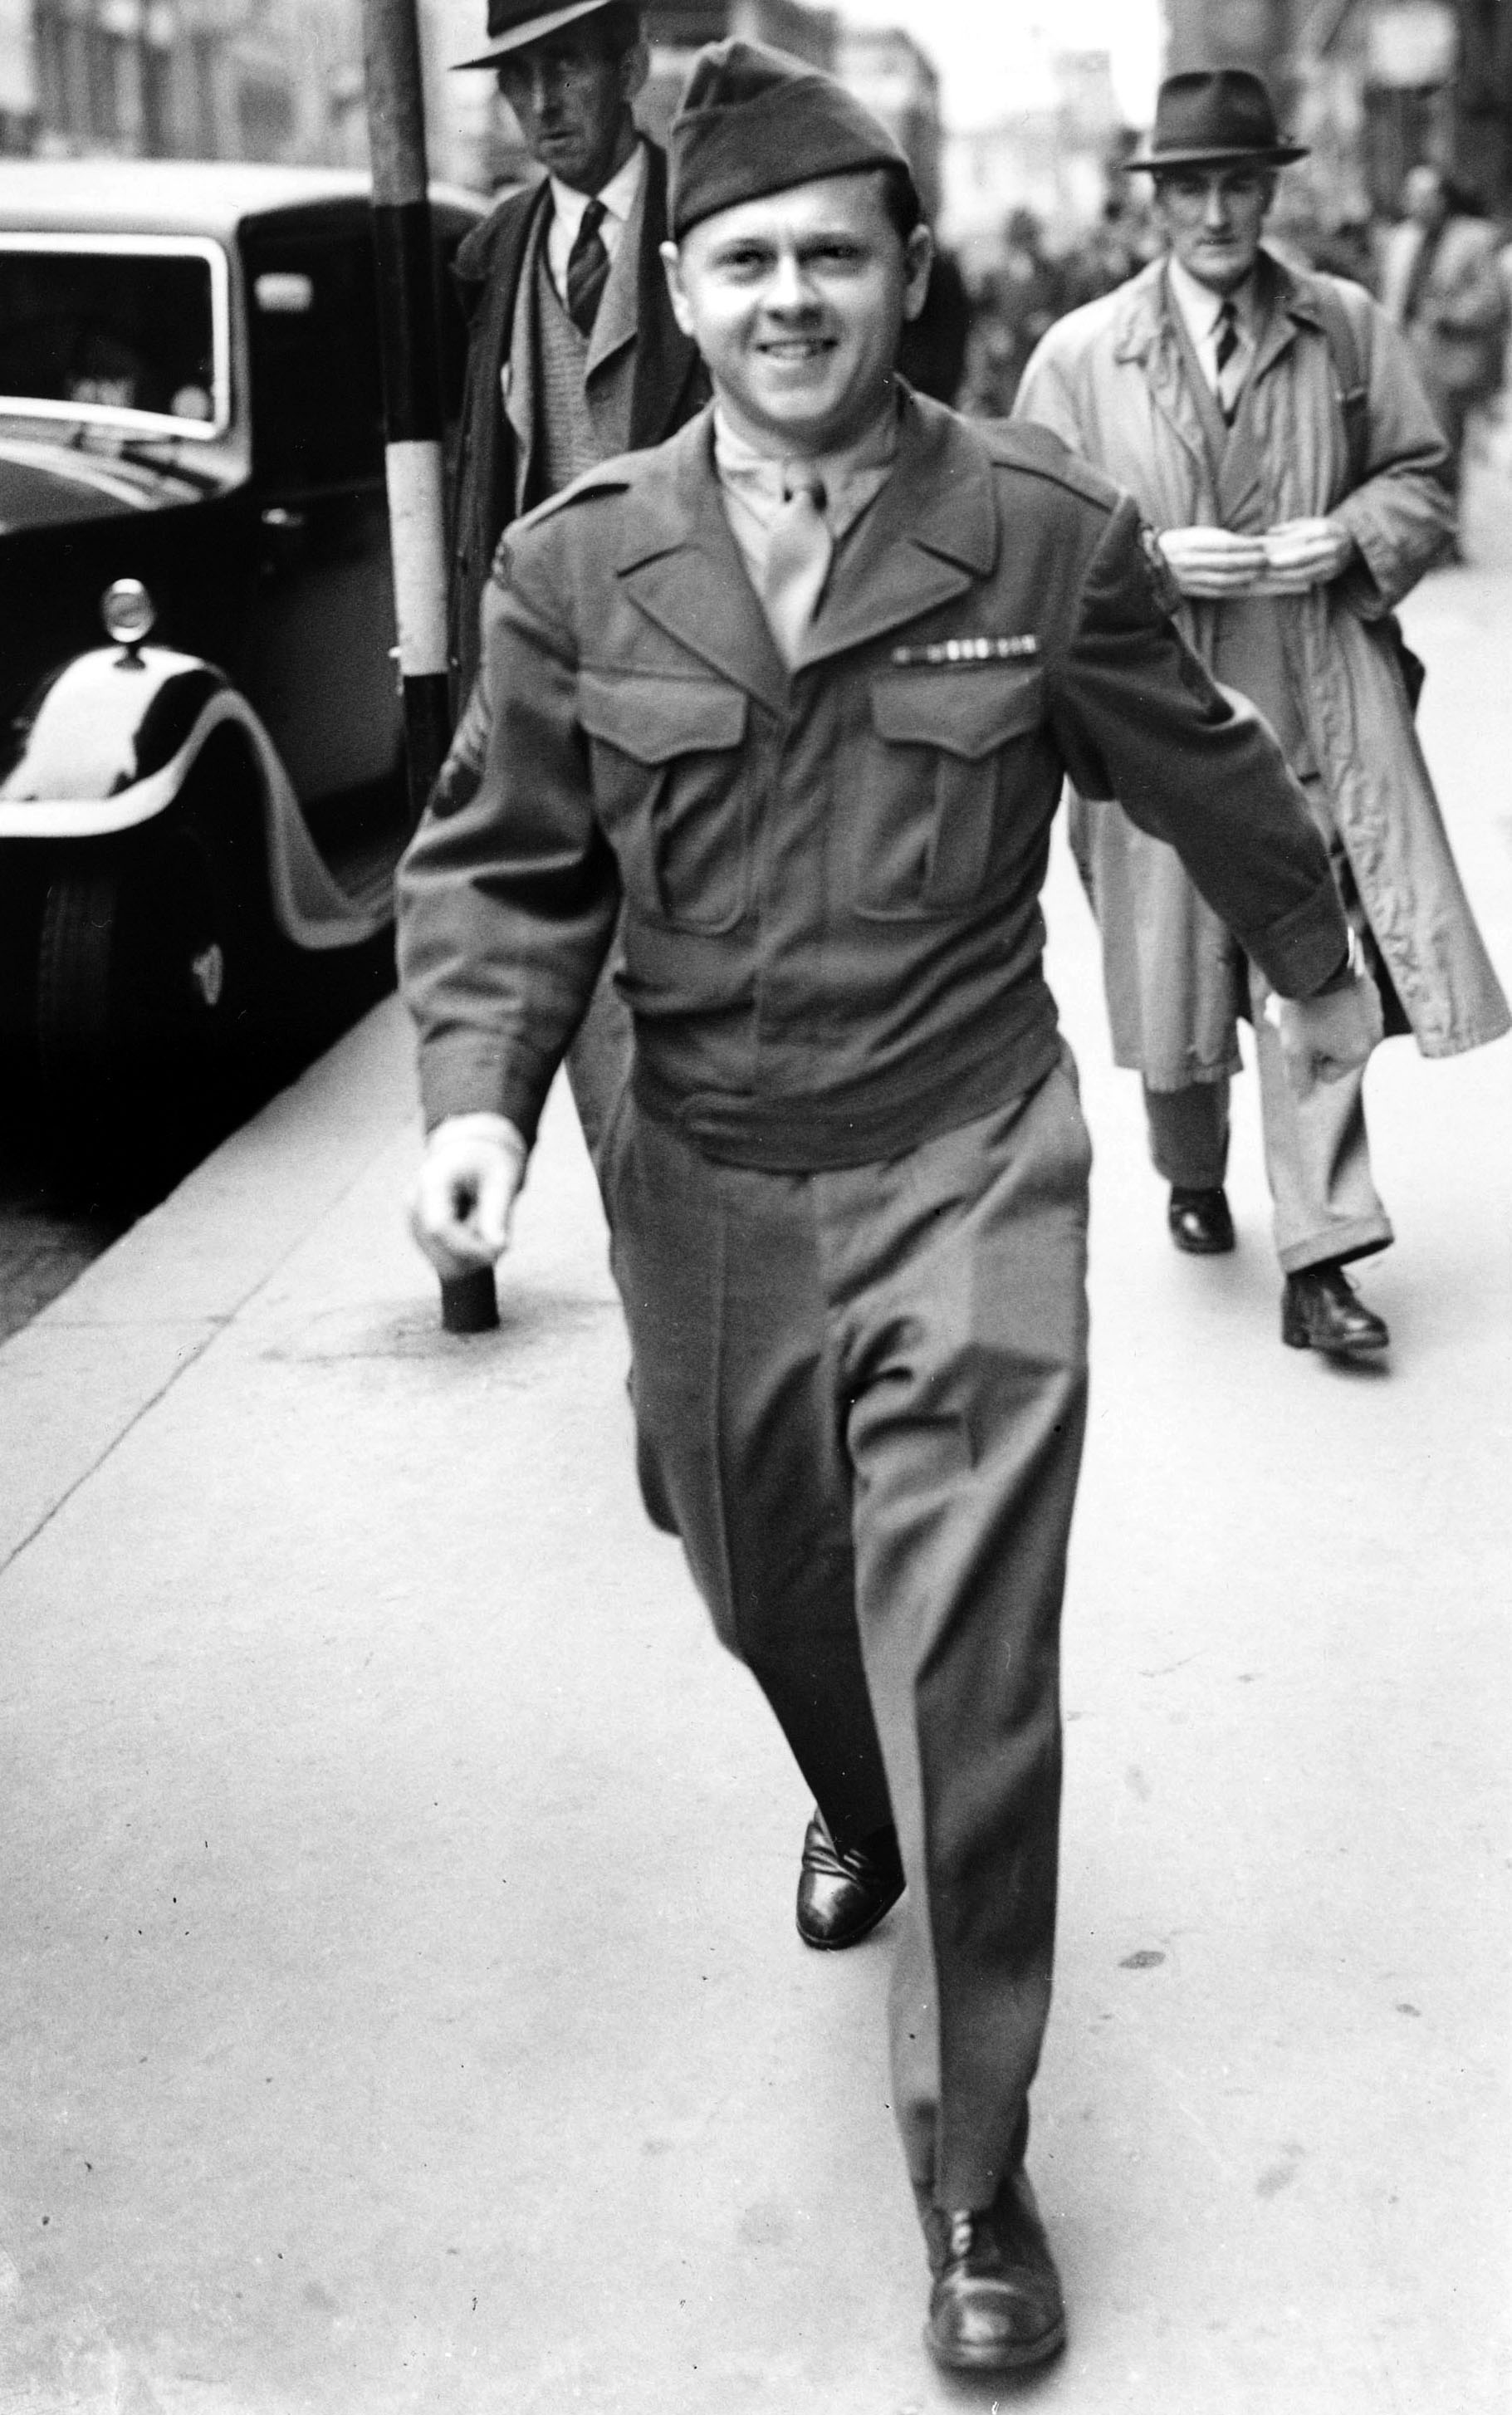 Rooney entered military service in 1944 and served more than 21 months during World War II. Above, he is seen while serving in, London, England on  August 11, 1945.